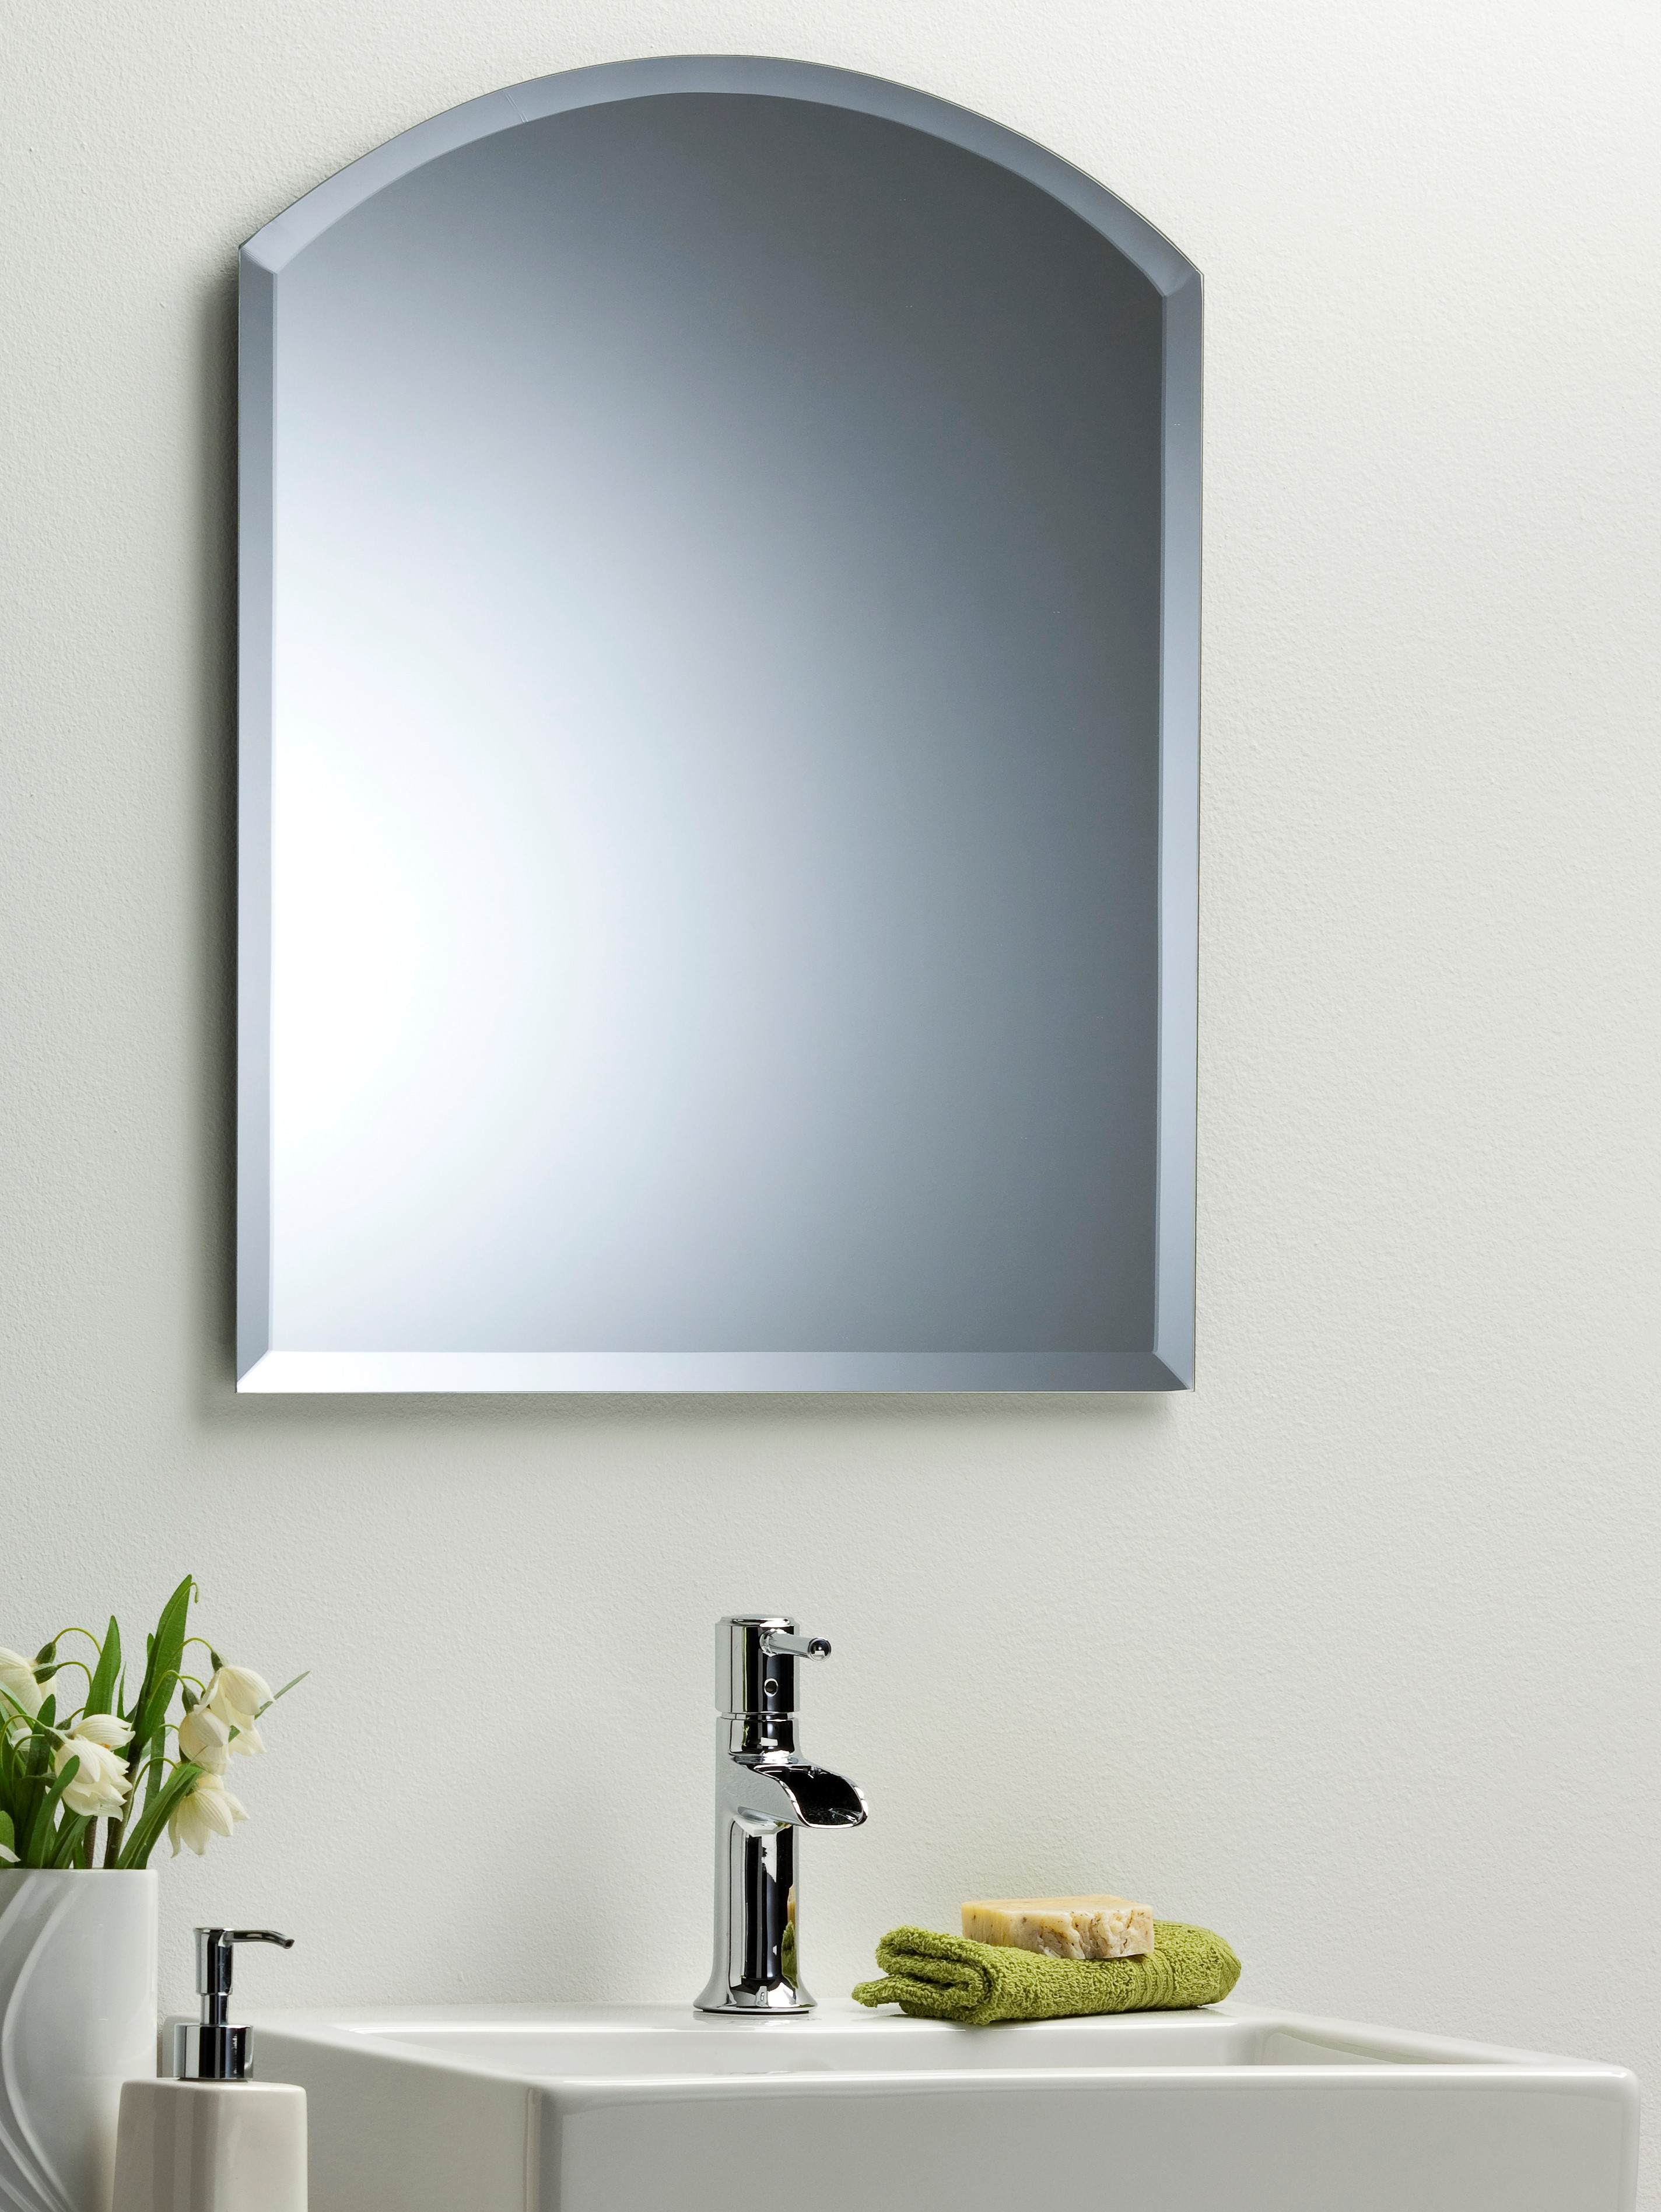 Simple Bathroom Mirror Beautiful Arch With Bevel Plain Wall Mounted 2 Sizes Ebay